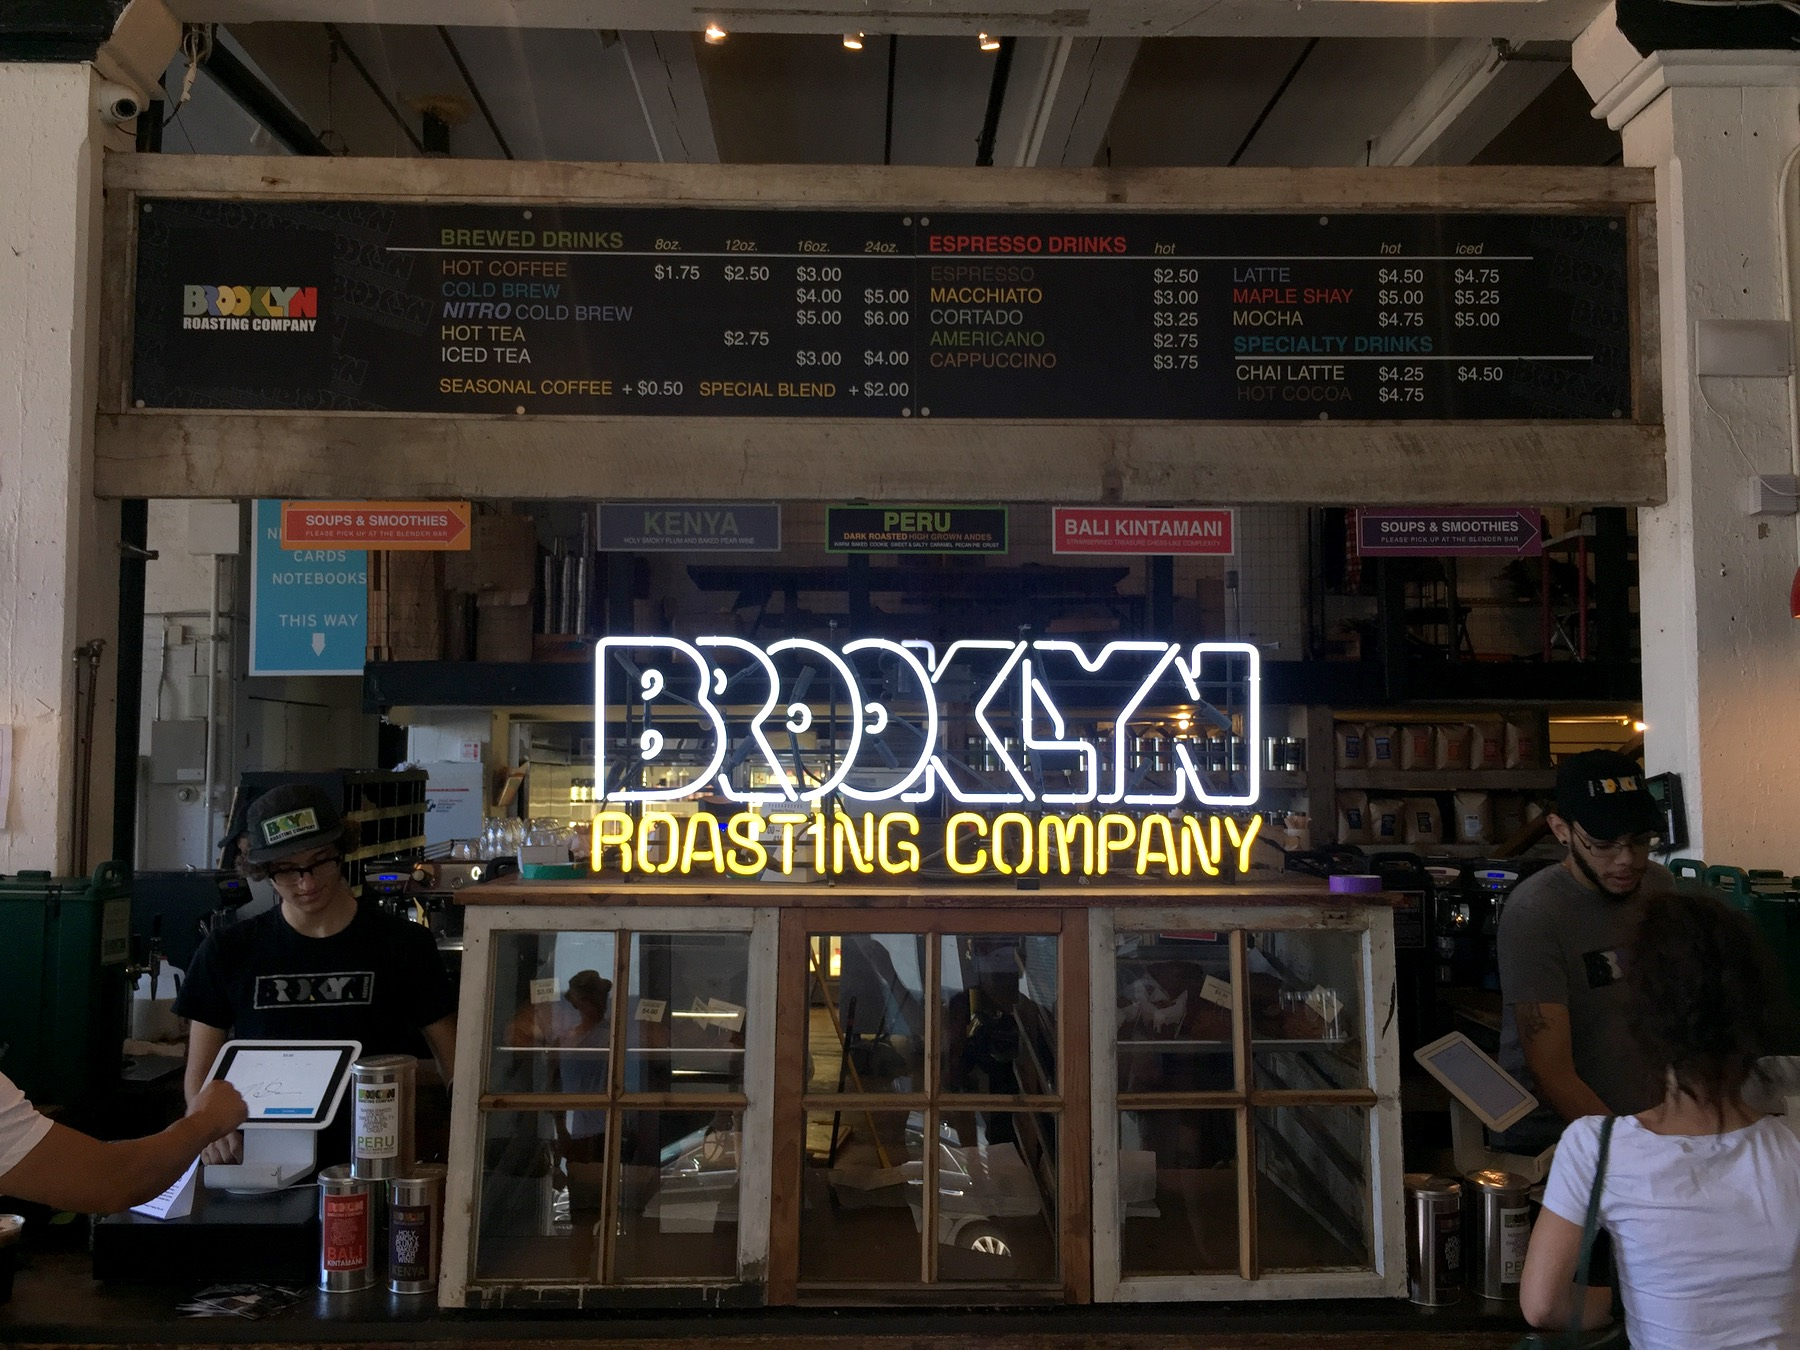 Thank you, Brooklyn Roasting Company